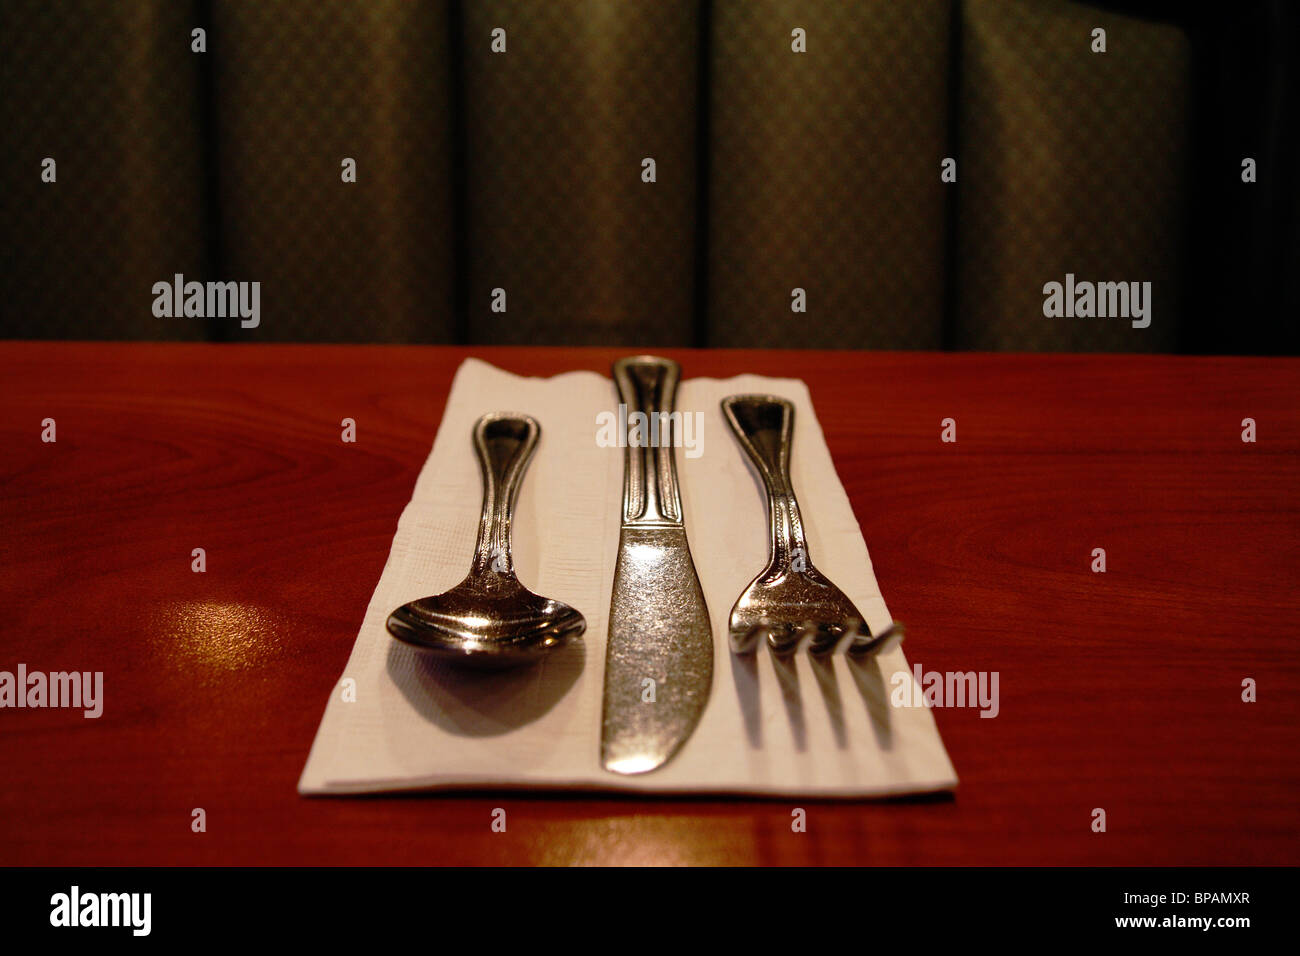 napkin with spoon, knife & fork on coffee shop table - Stock Image